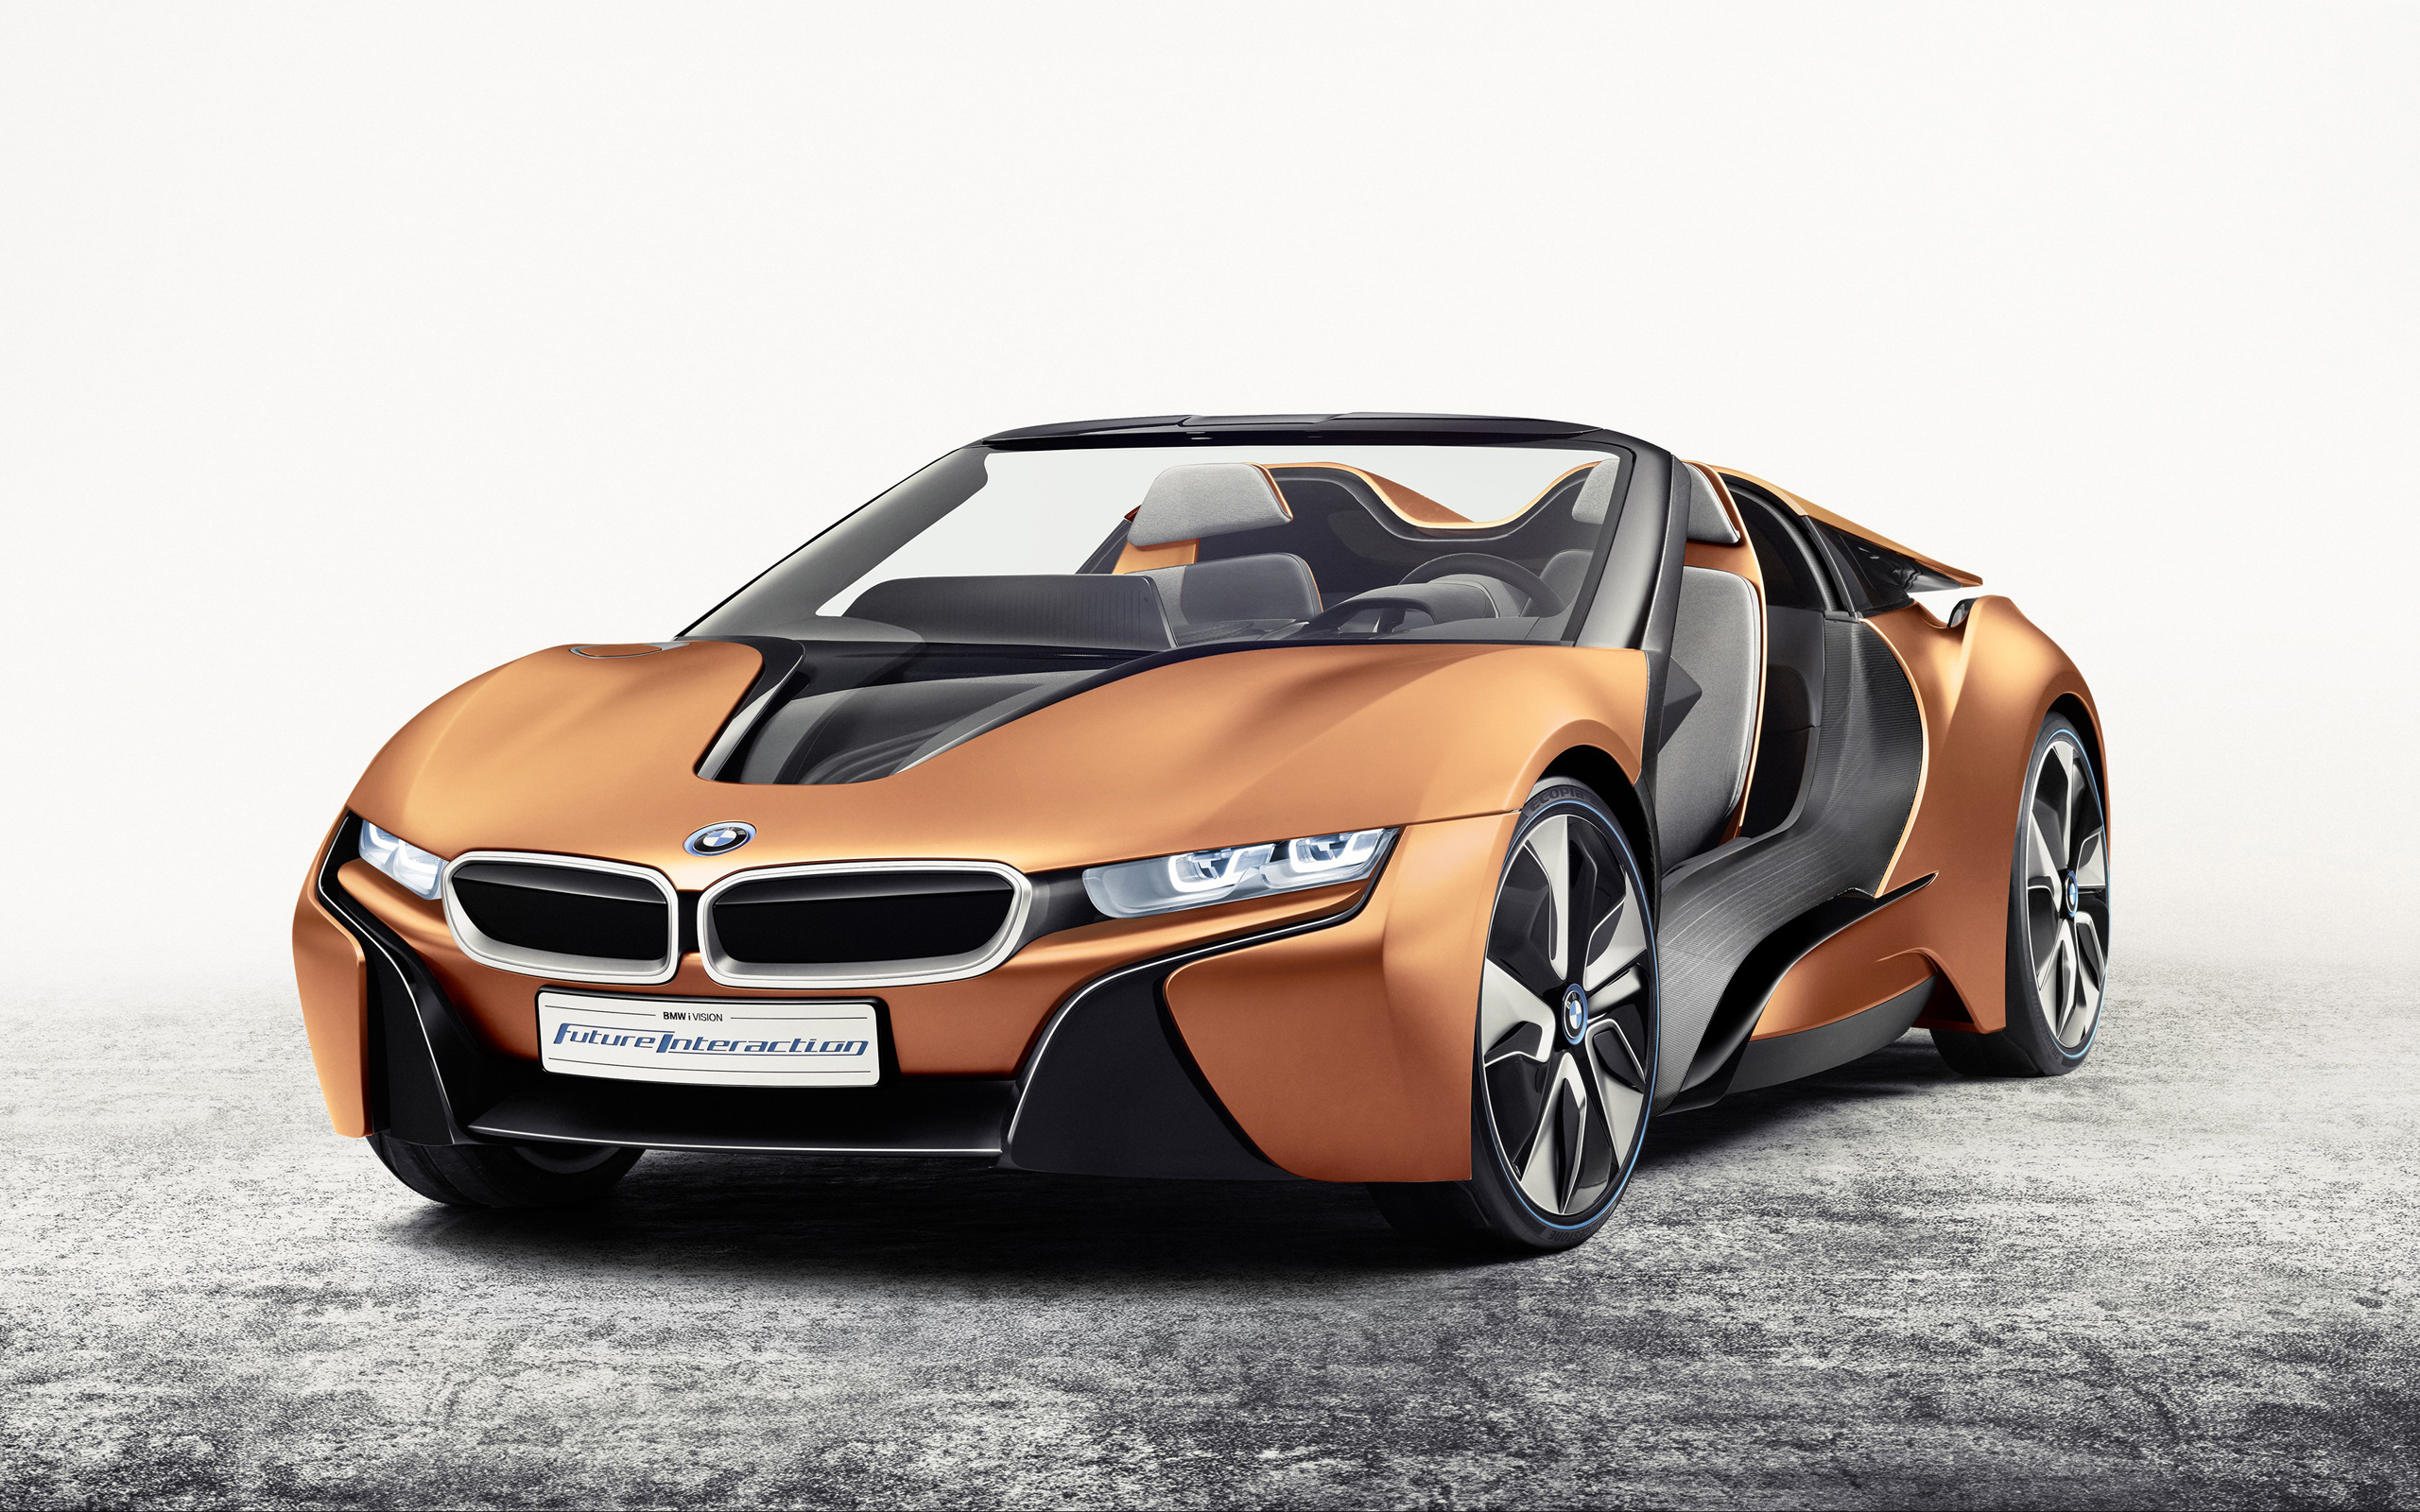 2560x1600 - BMW i3 Concept Wallpapers 29